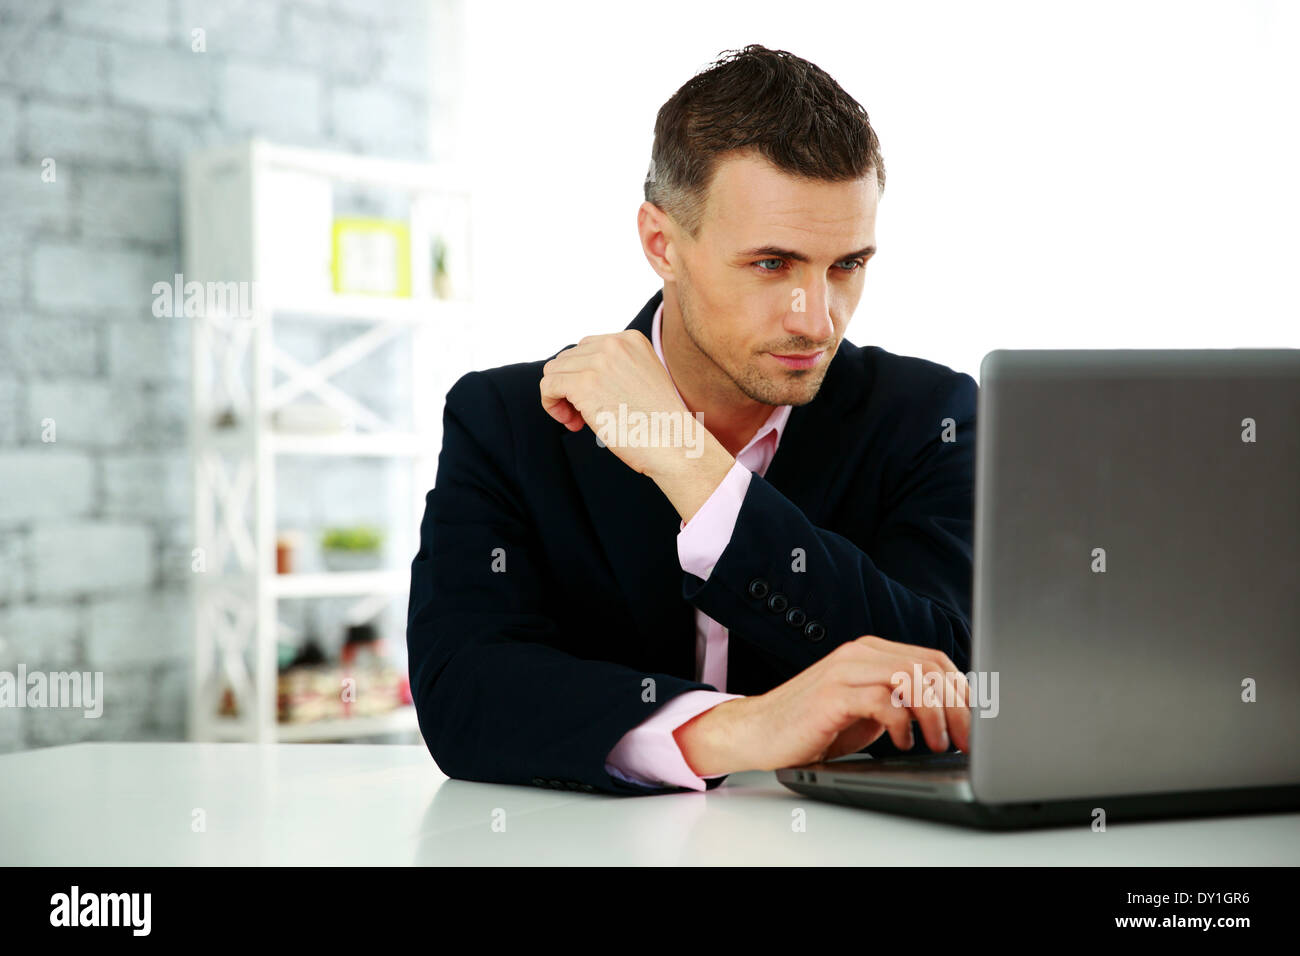 Confident businessman working on a laptop at office Photo Stock